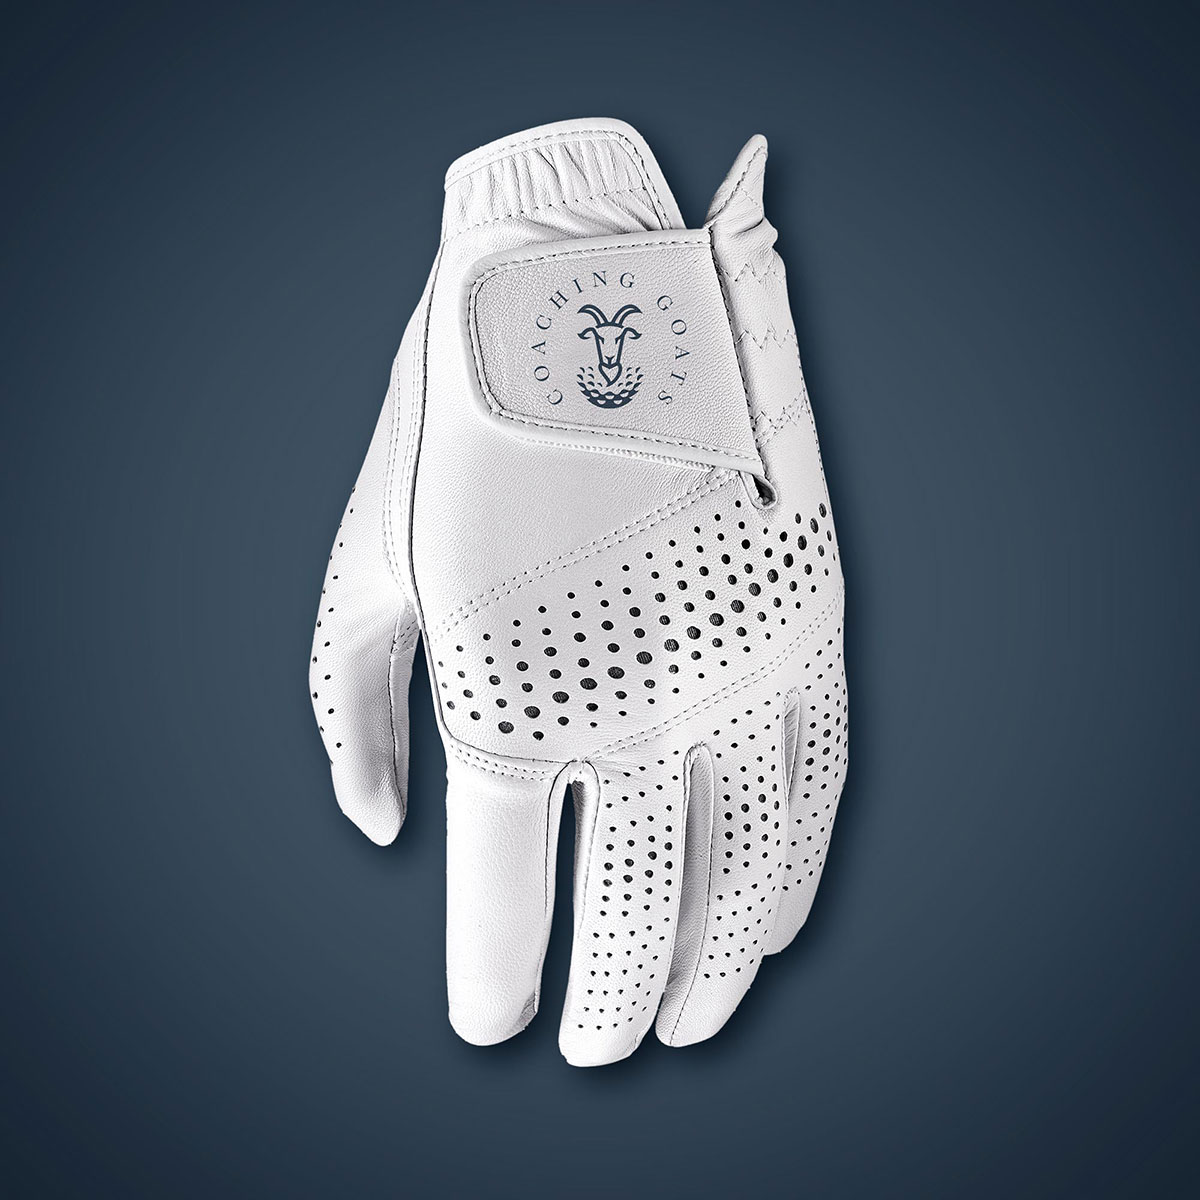 goat golf glove design